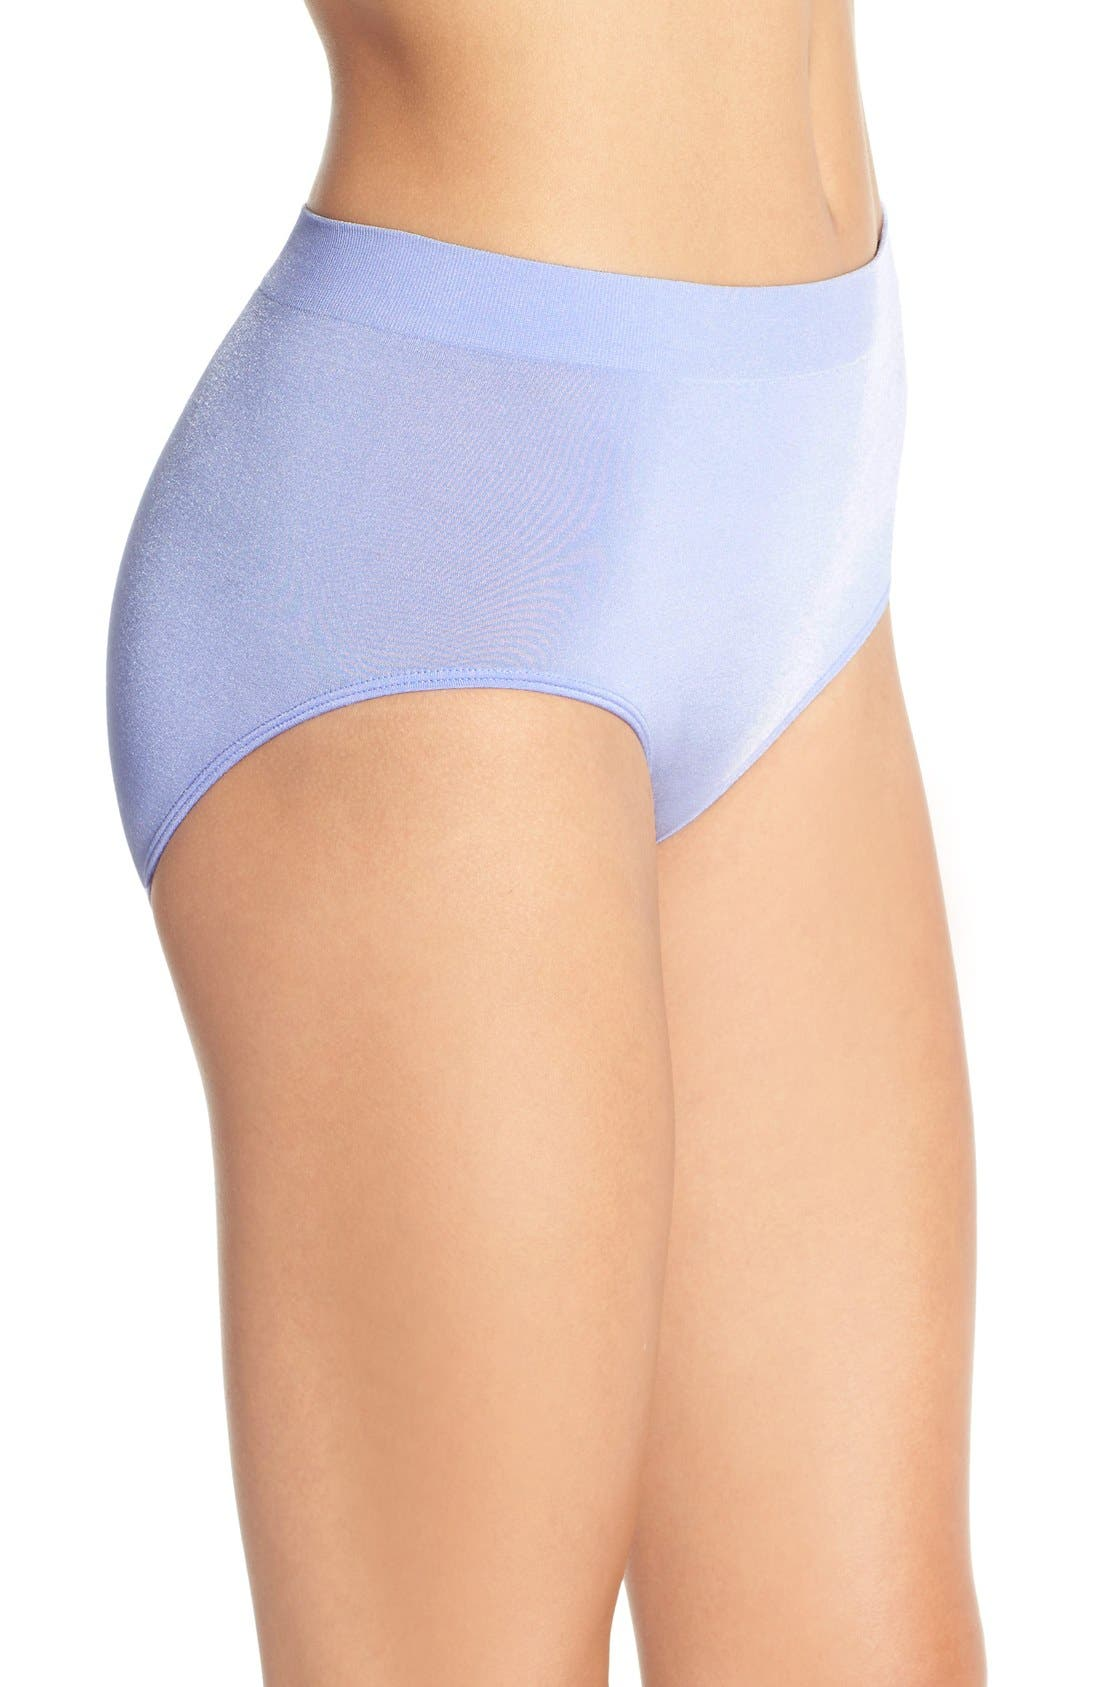 B Smooth Briefs,                             Alternate thumbnail 168, color,